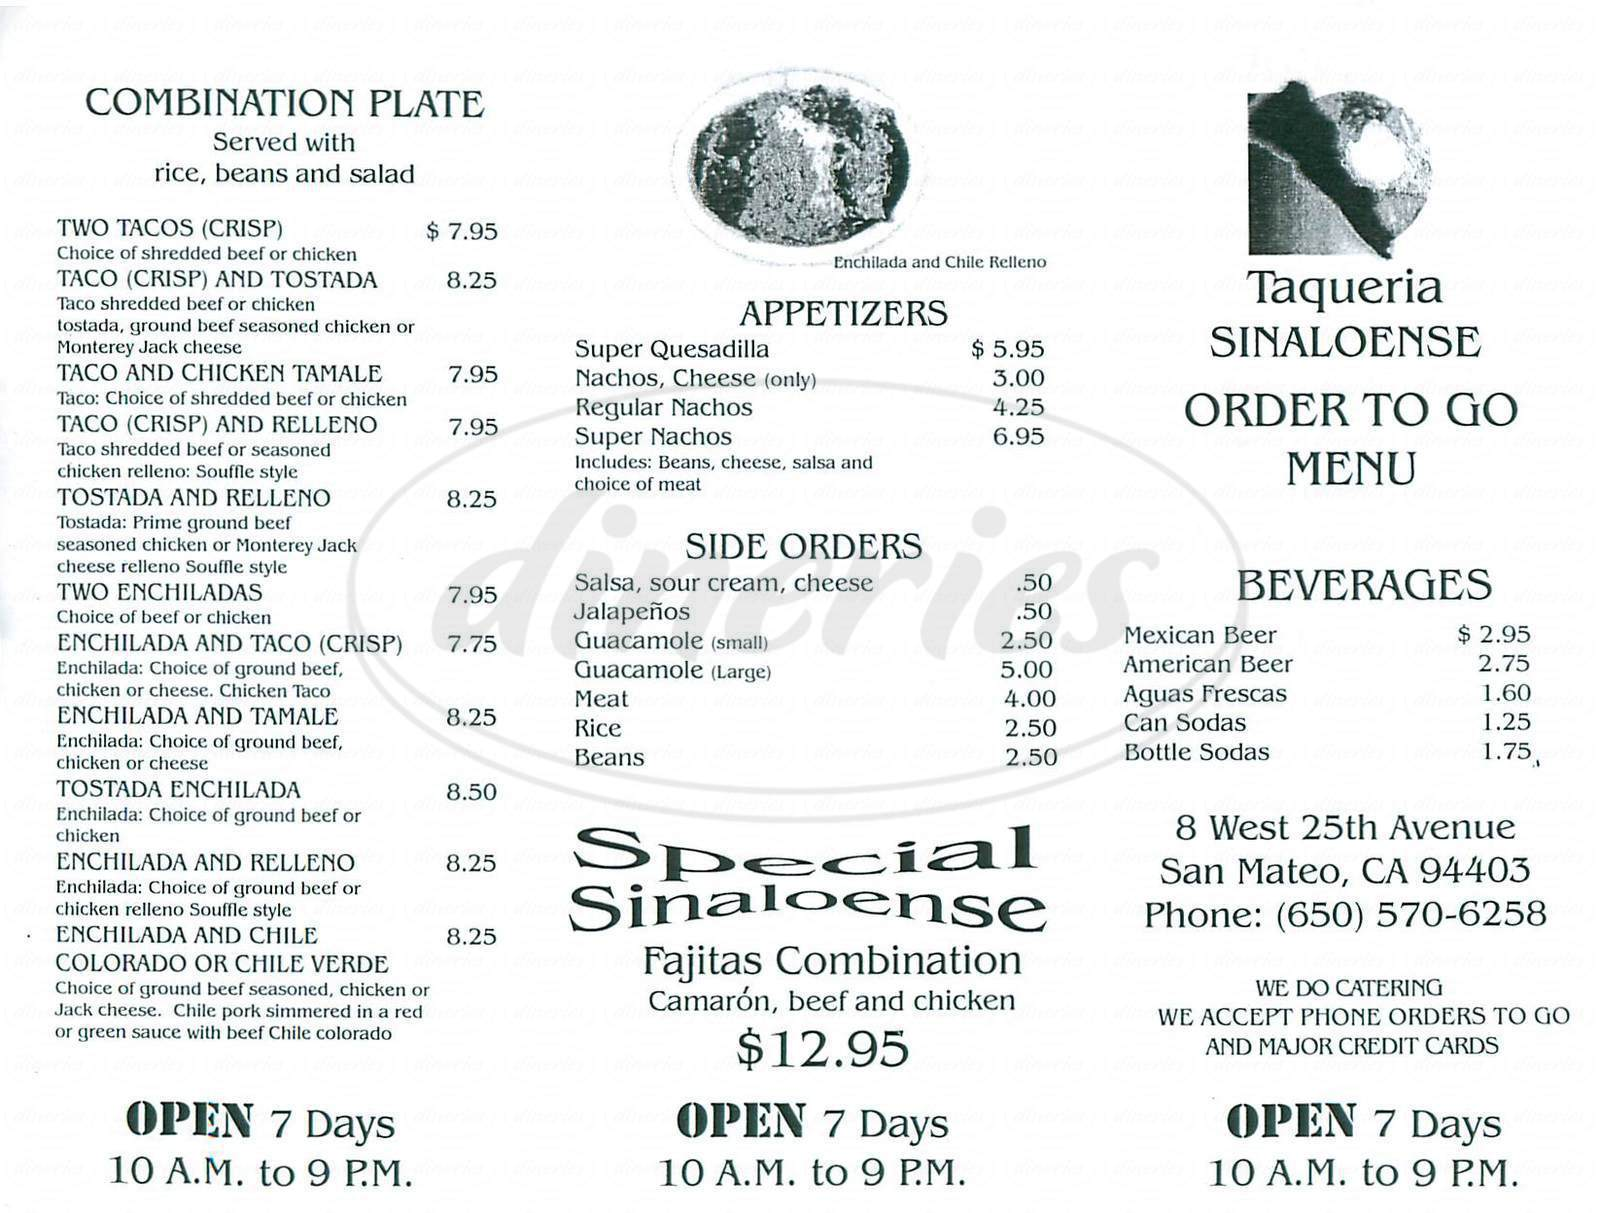 menu for Taqueria Sinaloense